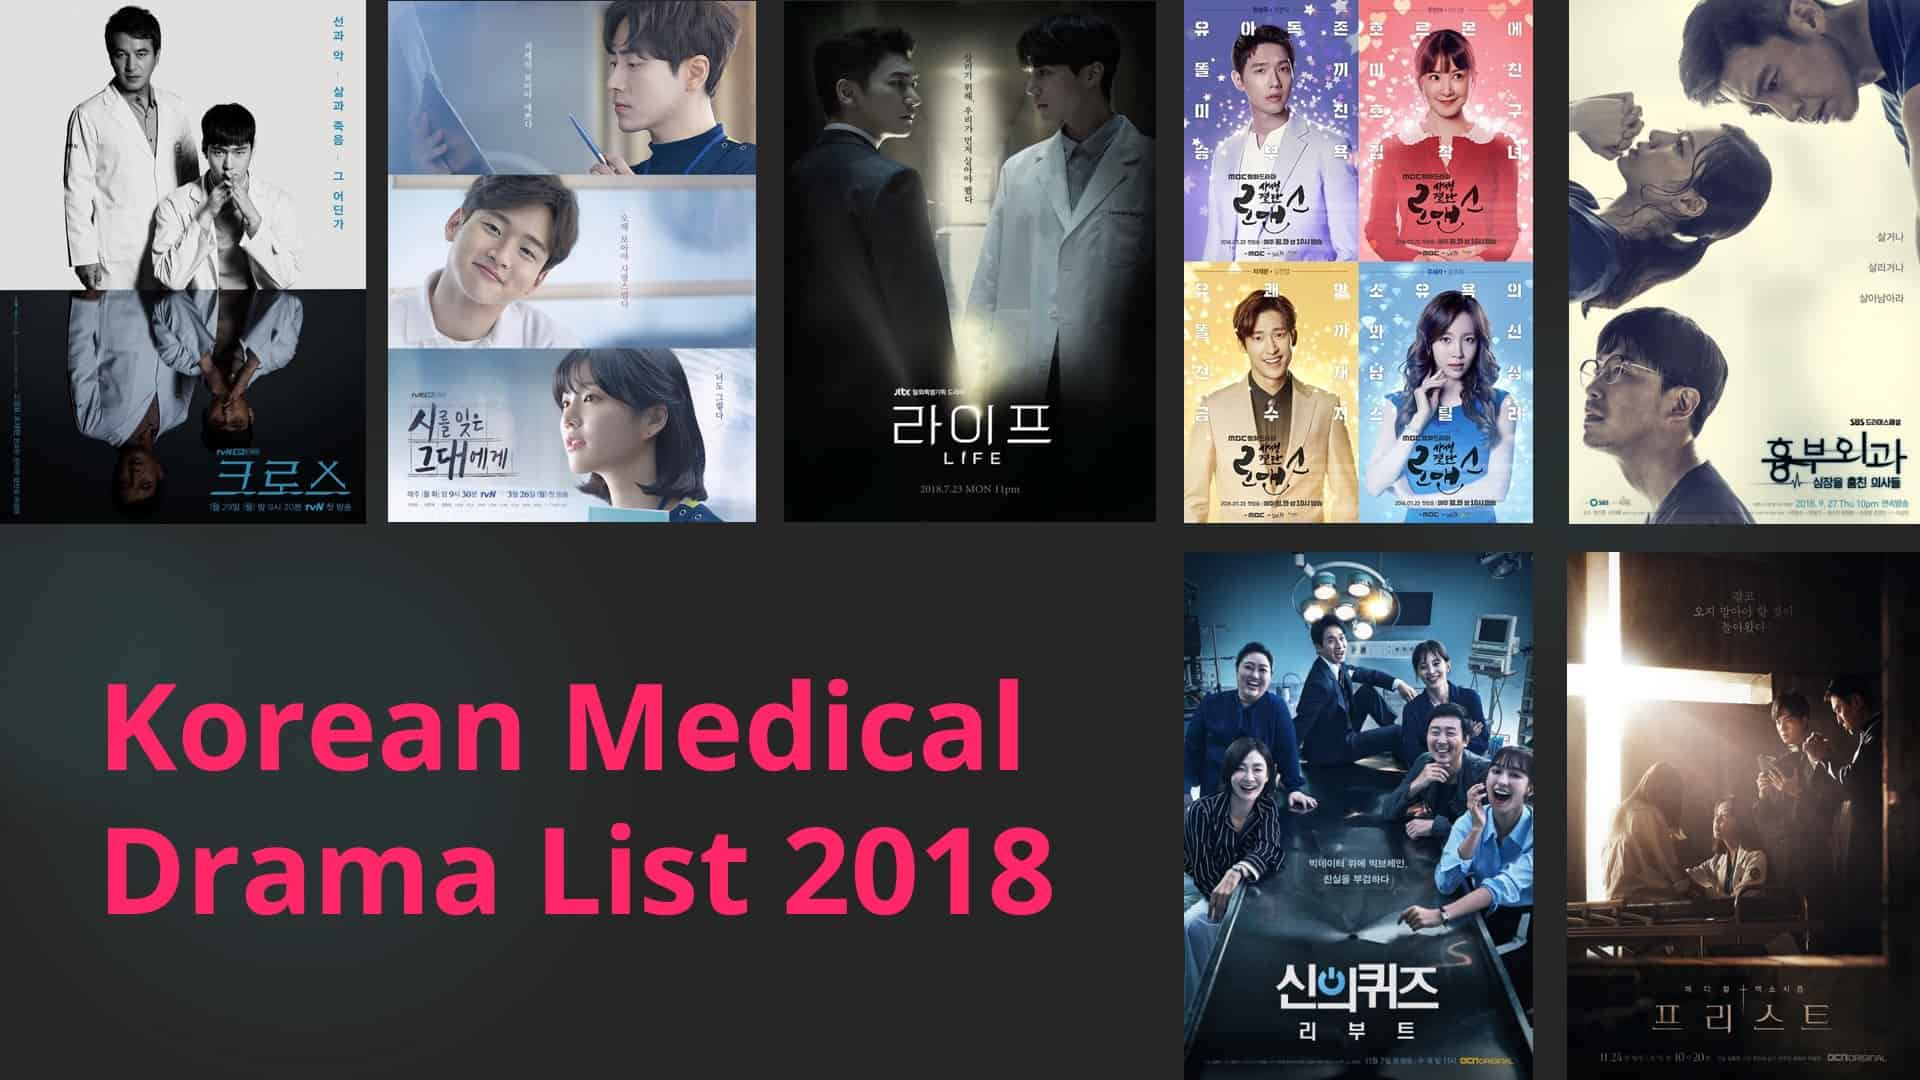 Korean Medical Drama List For 2018 You Want To Know